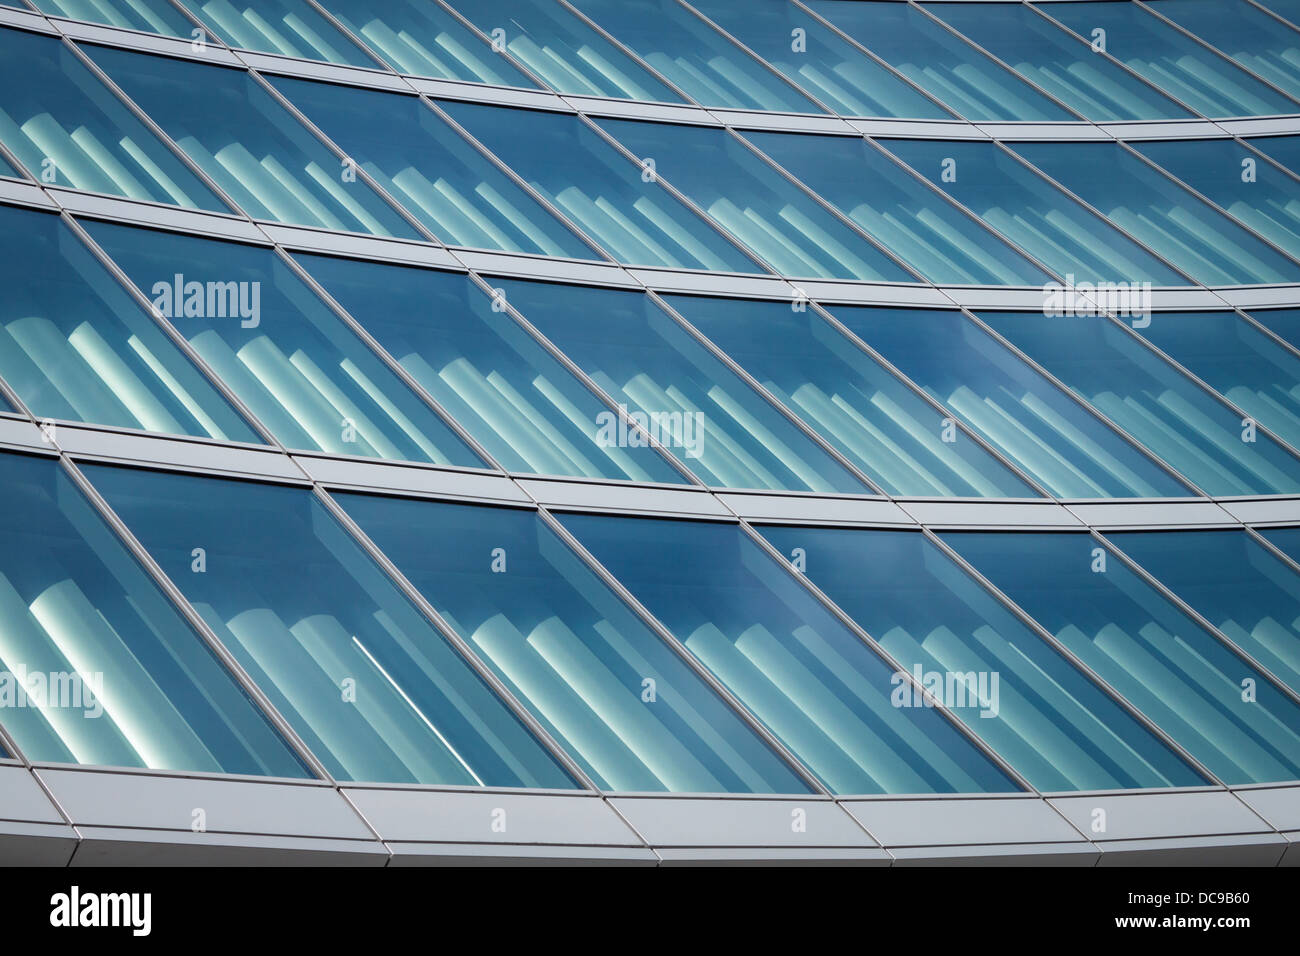 Architectural detail of a modern building of steel and glass - Stock Image